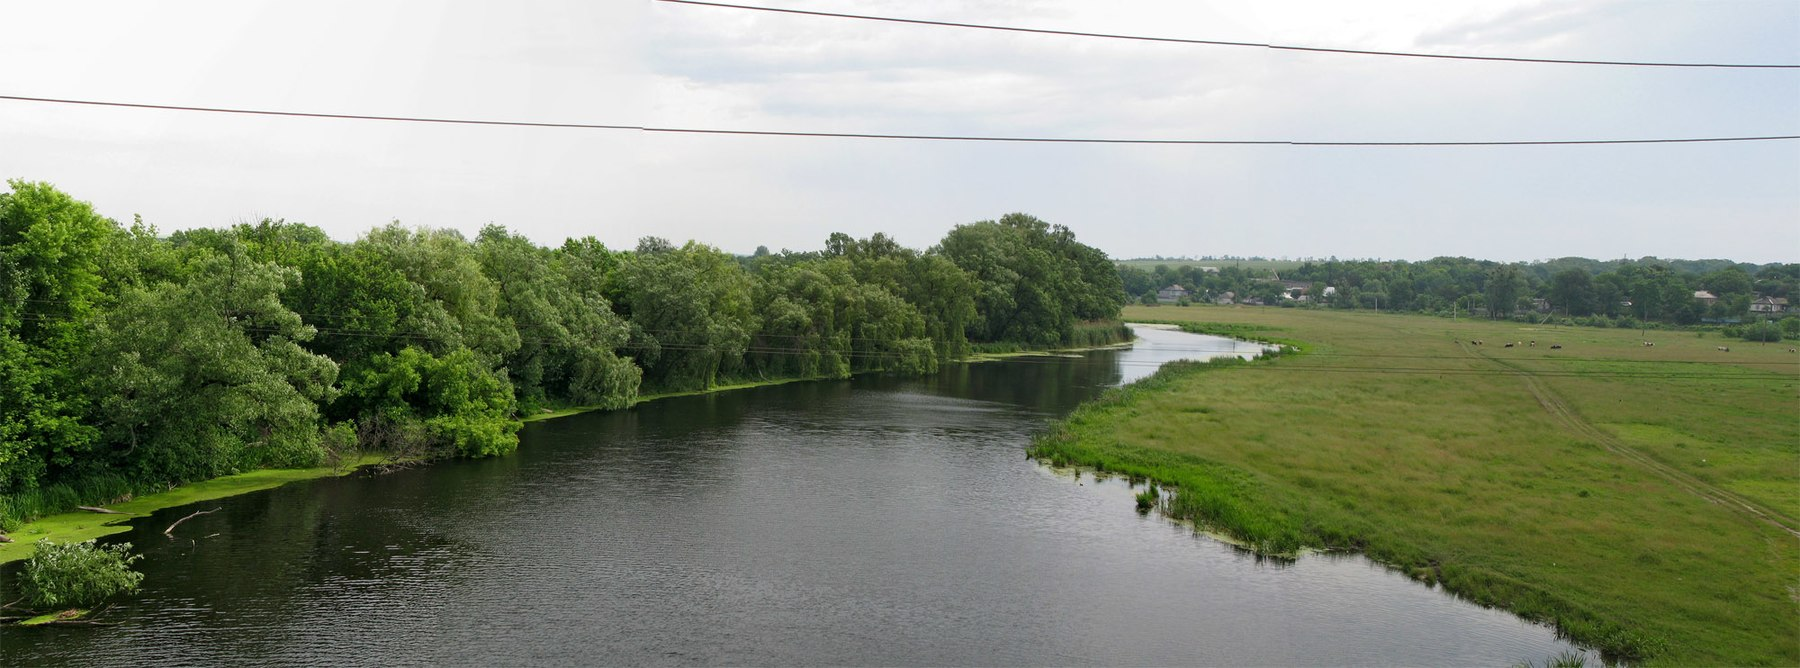 Tiasmyn River in Smila.jpg